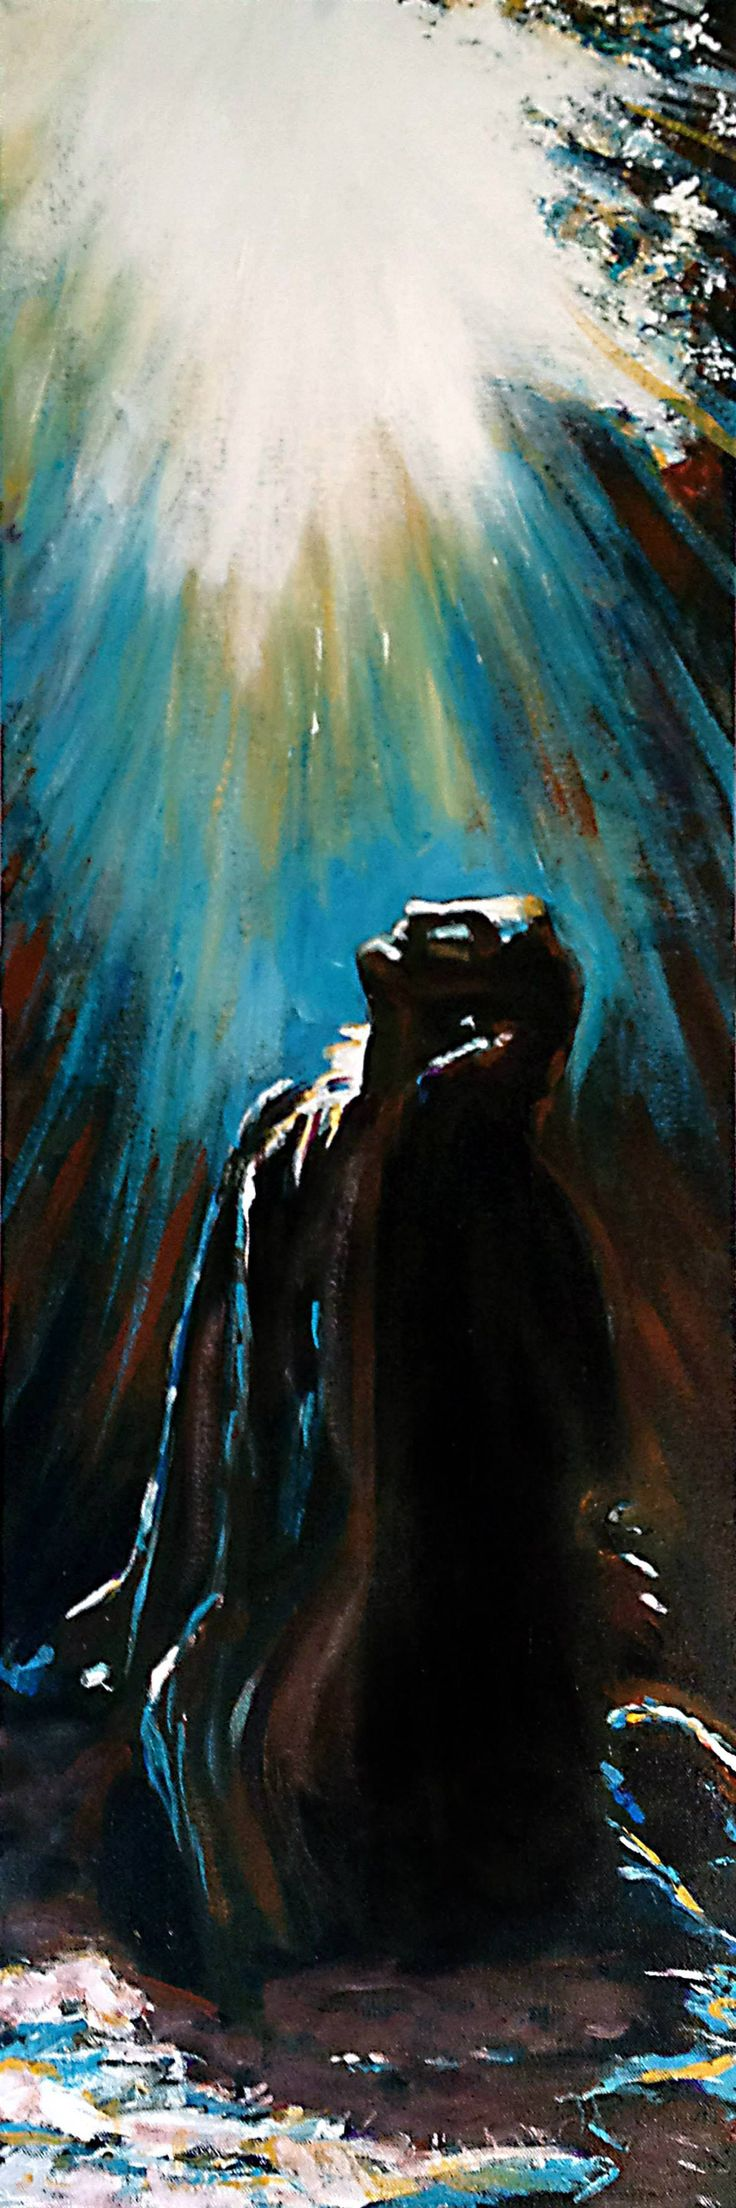 "Gethsemane - 12"" x 36"" acrylic on canvas by Steve Gamba"